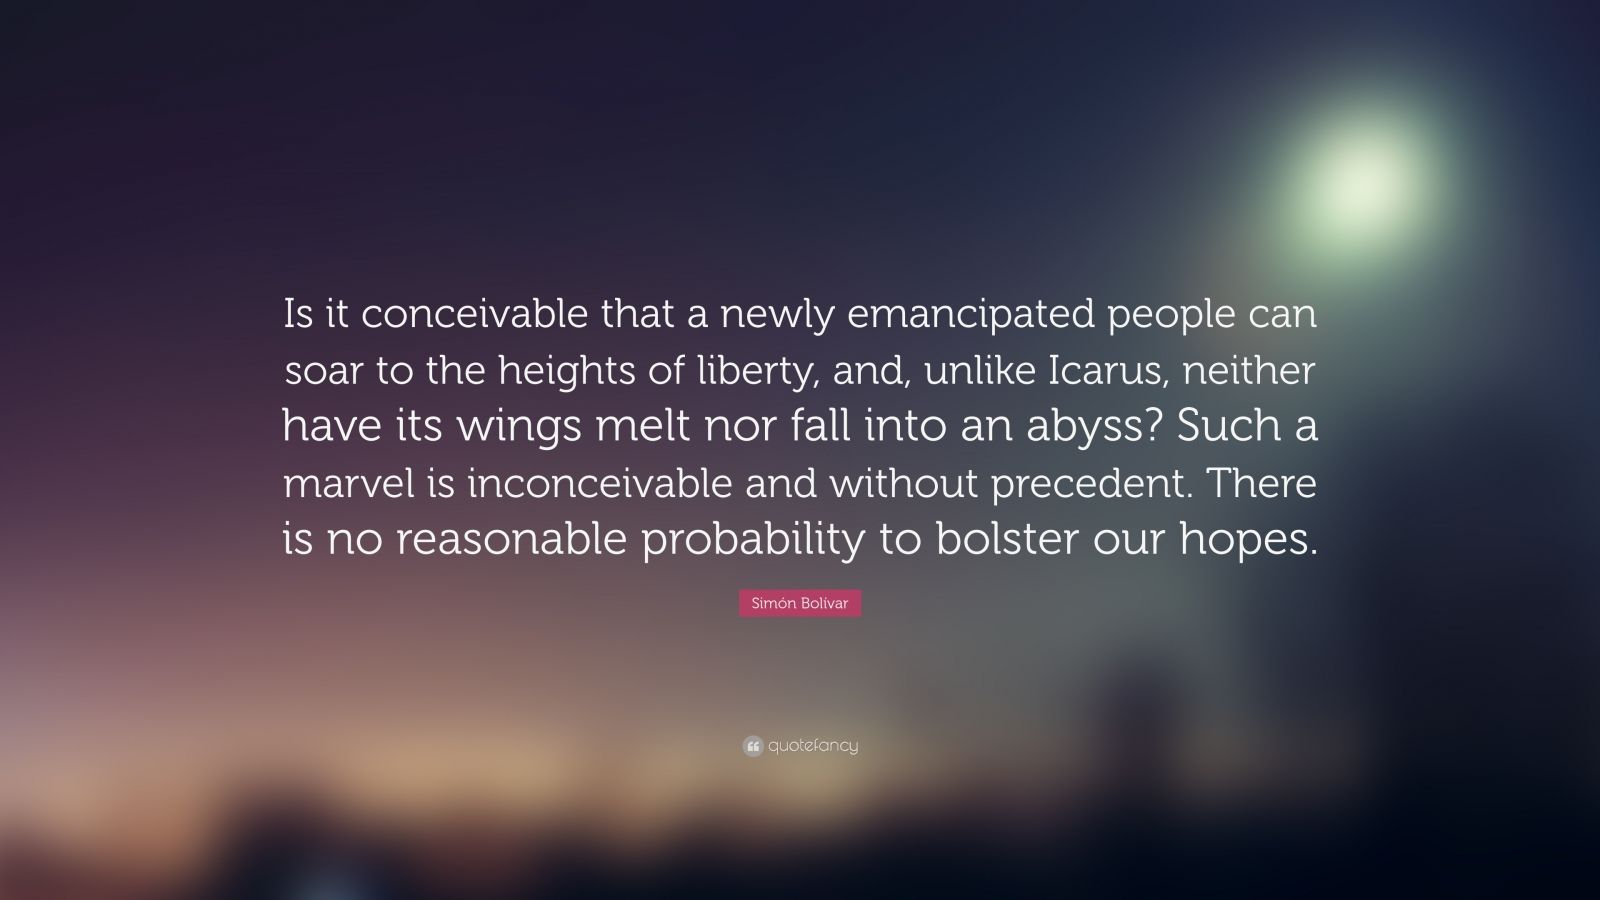 """Simón Bolívar Quote: """"Is it conceivable that a newly emancipated people can soar to the heights of liberty, and, unlike Icarus, neither have its wings melt nor fall into an abyss? Such a marvel is inconceivable and without precedent. There is no reasonable probability to bolster our hopes."""""""